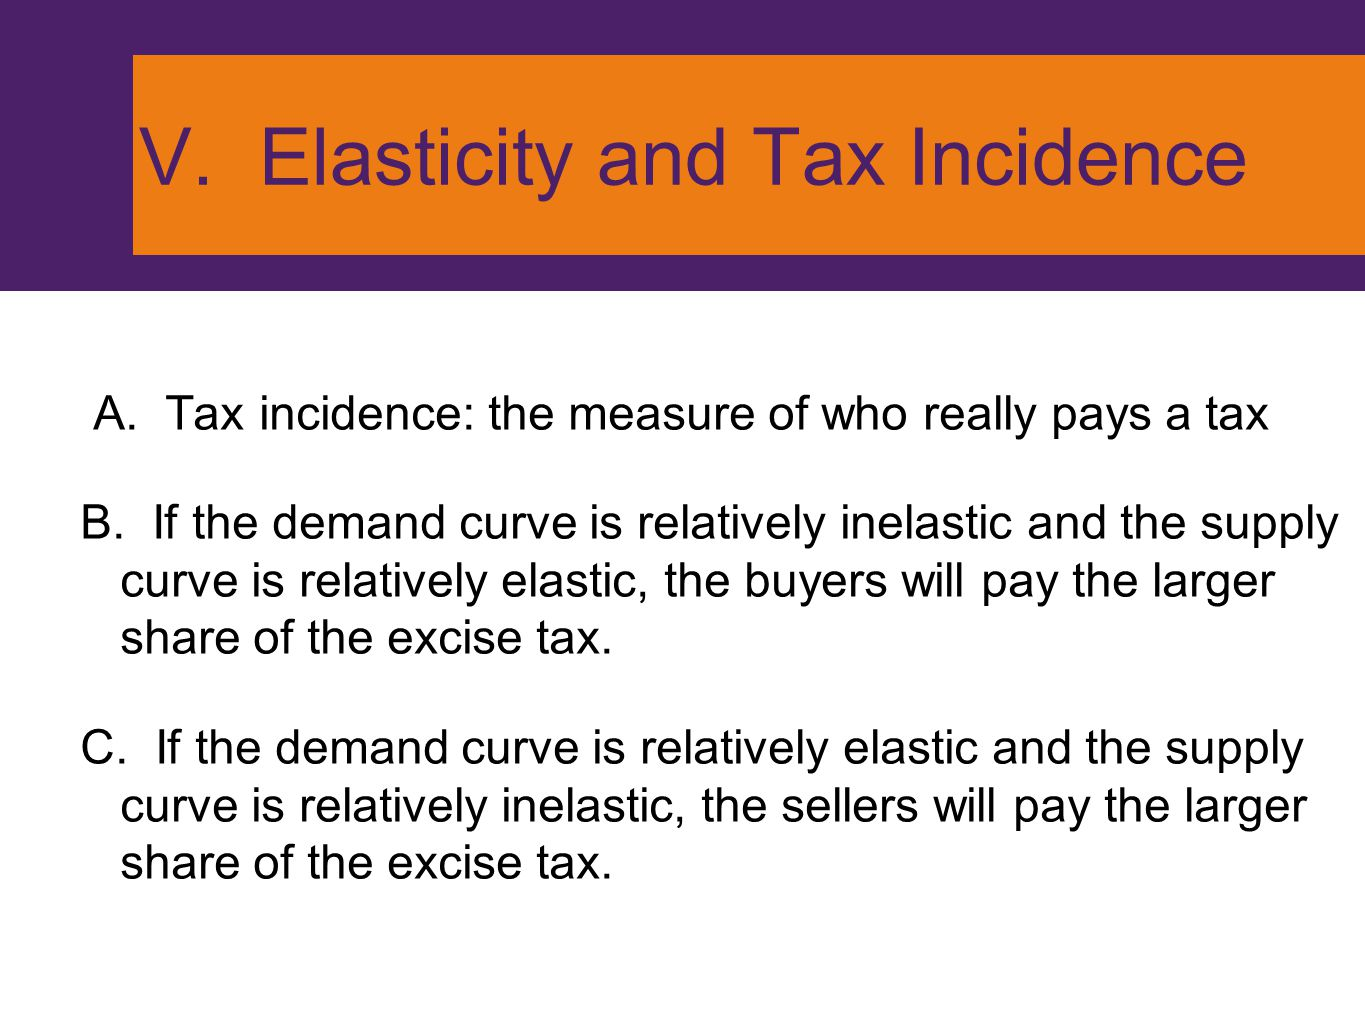 V. Elasticity and Tax Incidence A. Tax incidence: the measure of who really pays a tax B. If the demand curve is relatively inelastic and the supply c